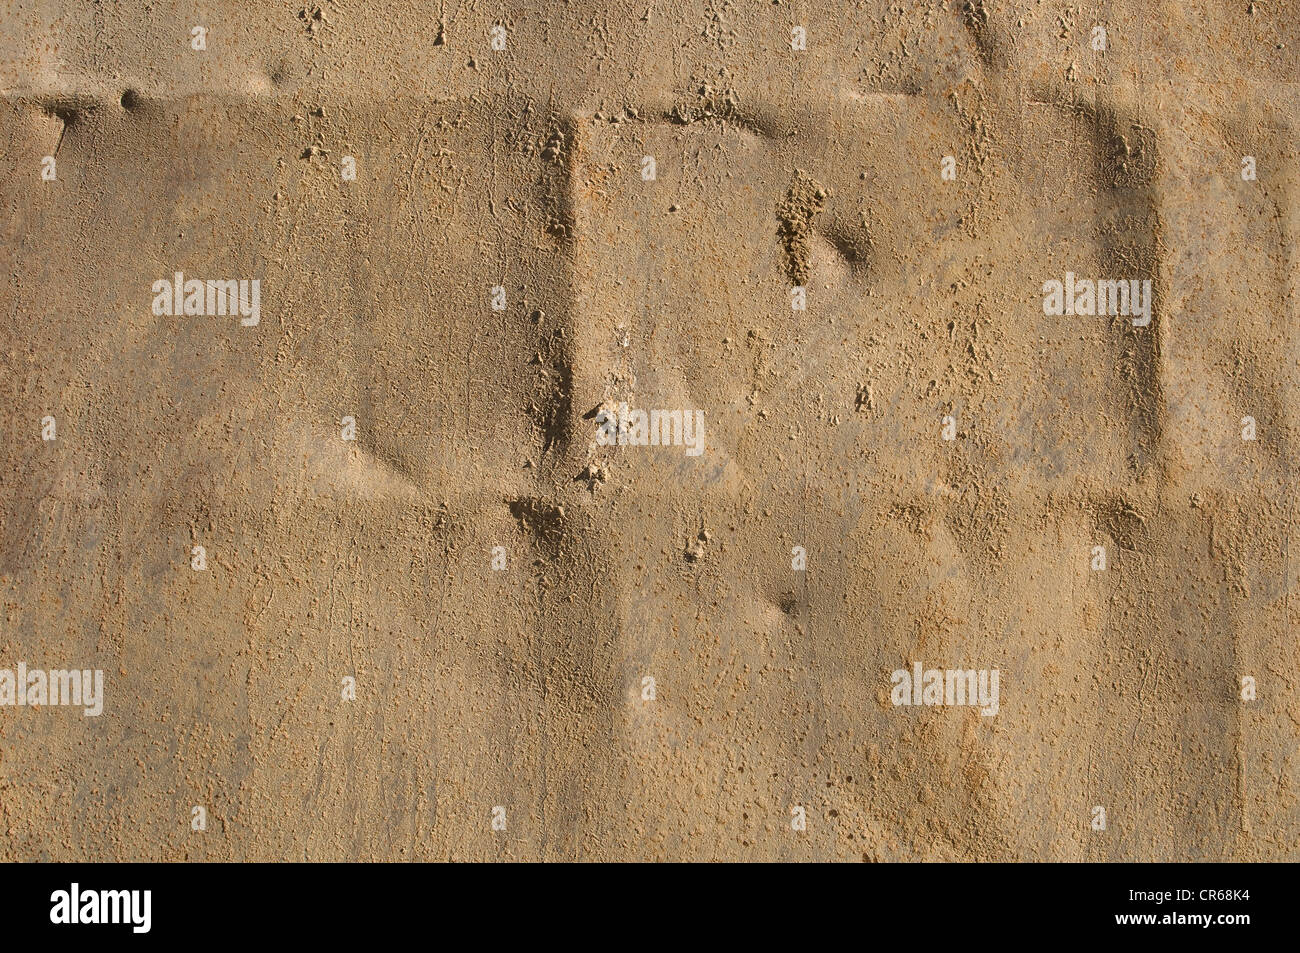 Metal plate, background - Stock Image